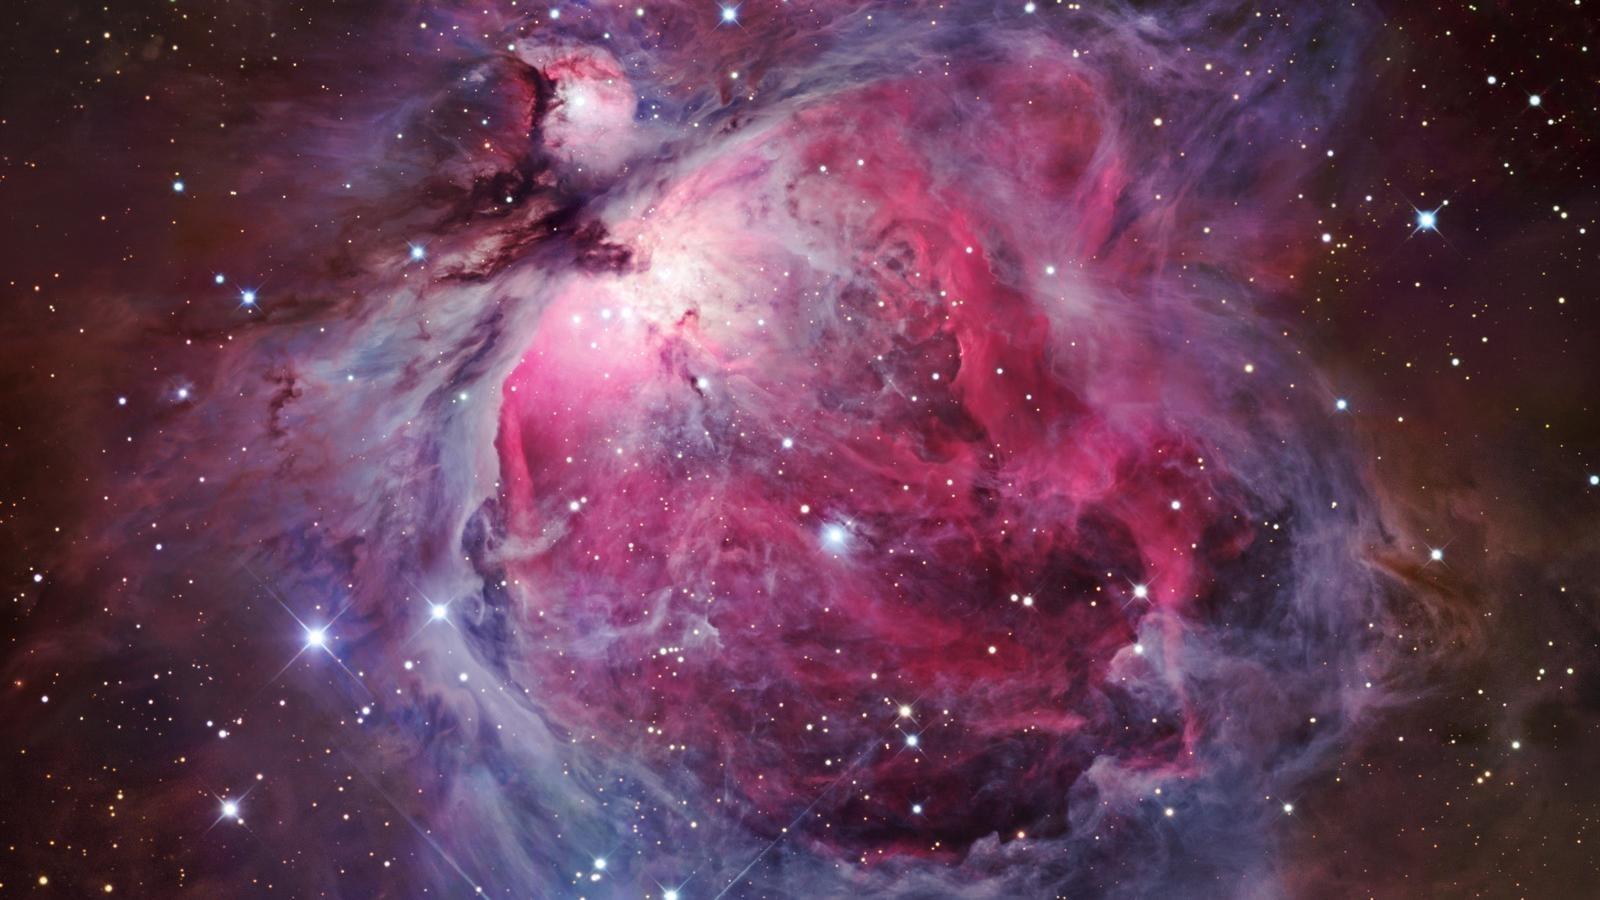 orion nebula wallpapers group with 34 items